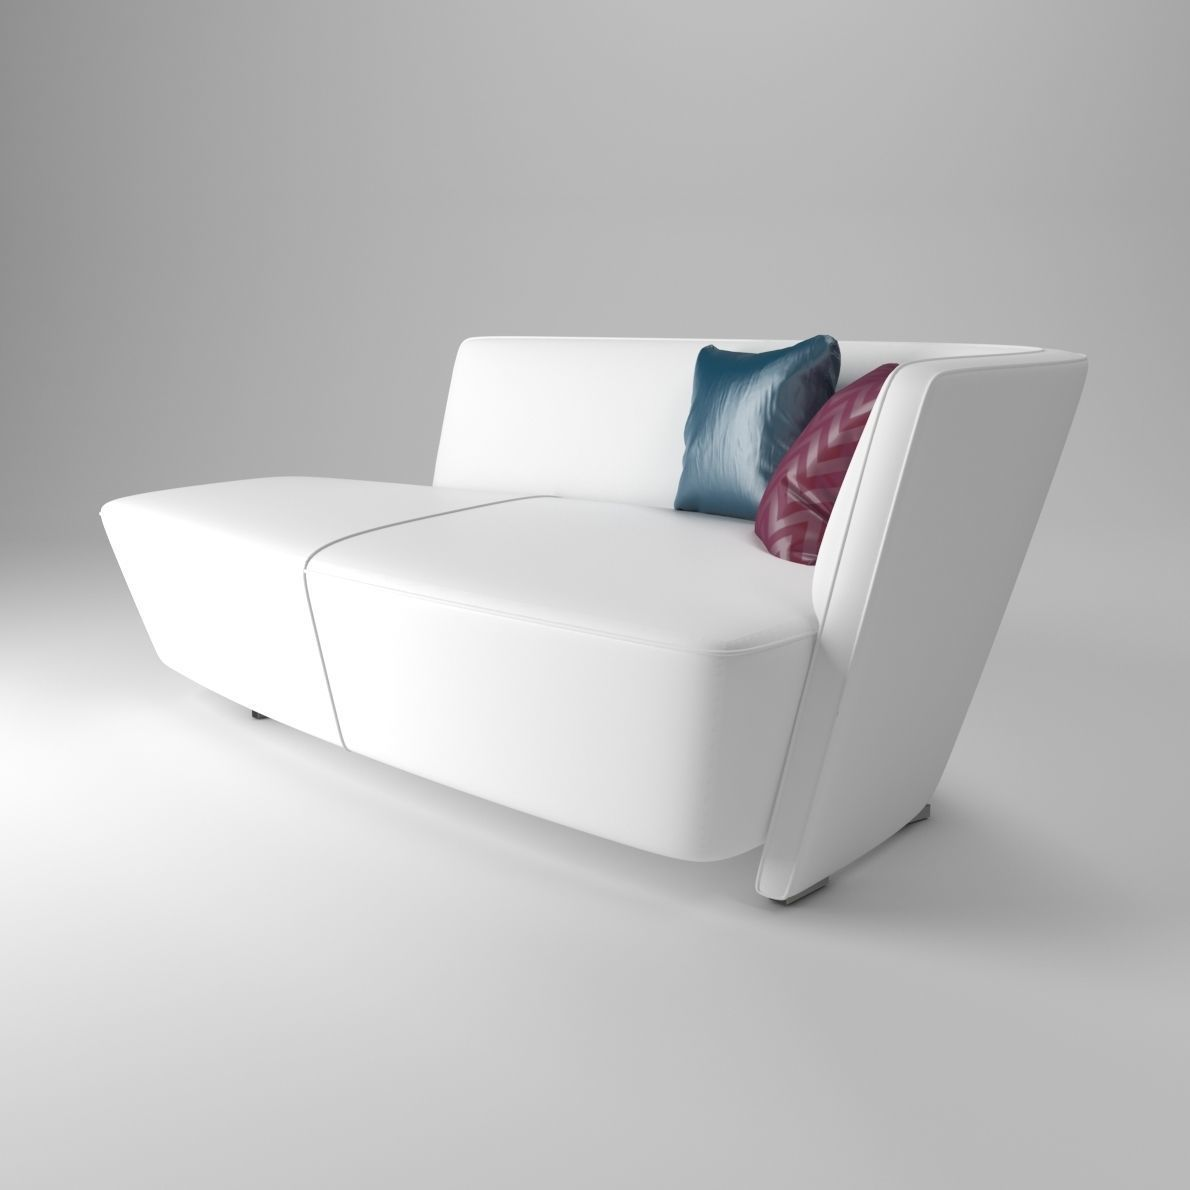 Recamiere Design Recamiere Drift From Walter Knoll Design By Eoos 3d Model